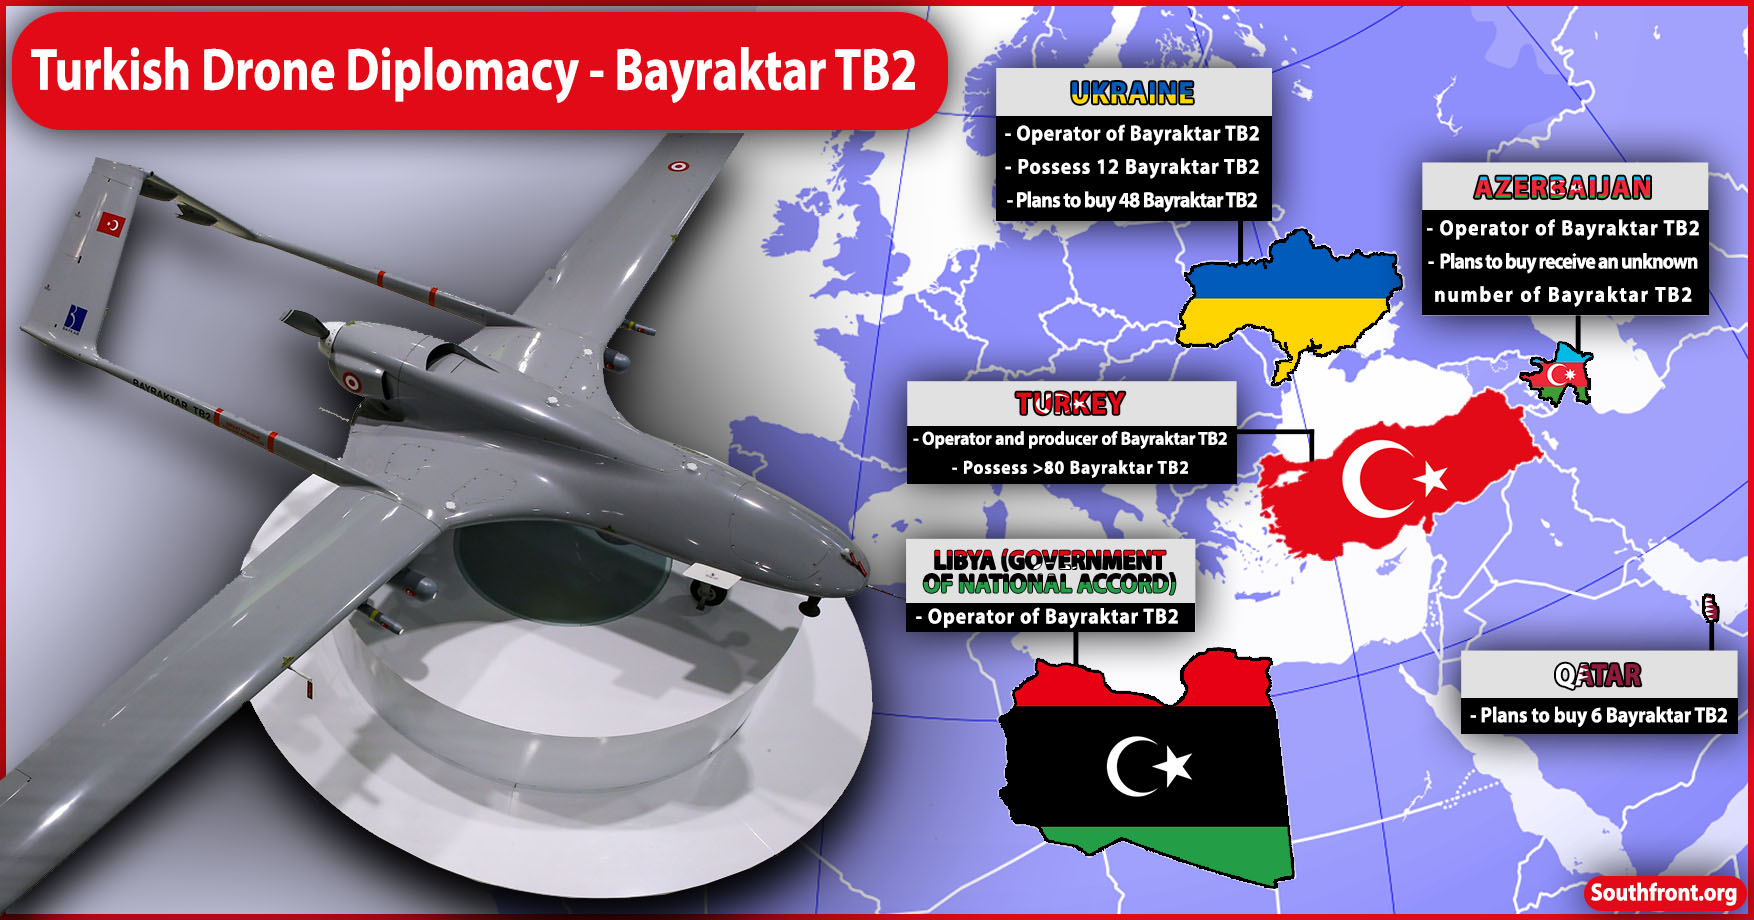 Turkish Drone Diplomacy